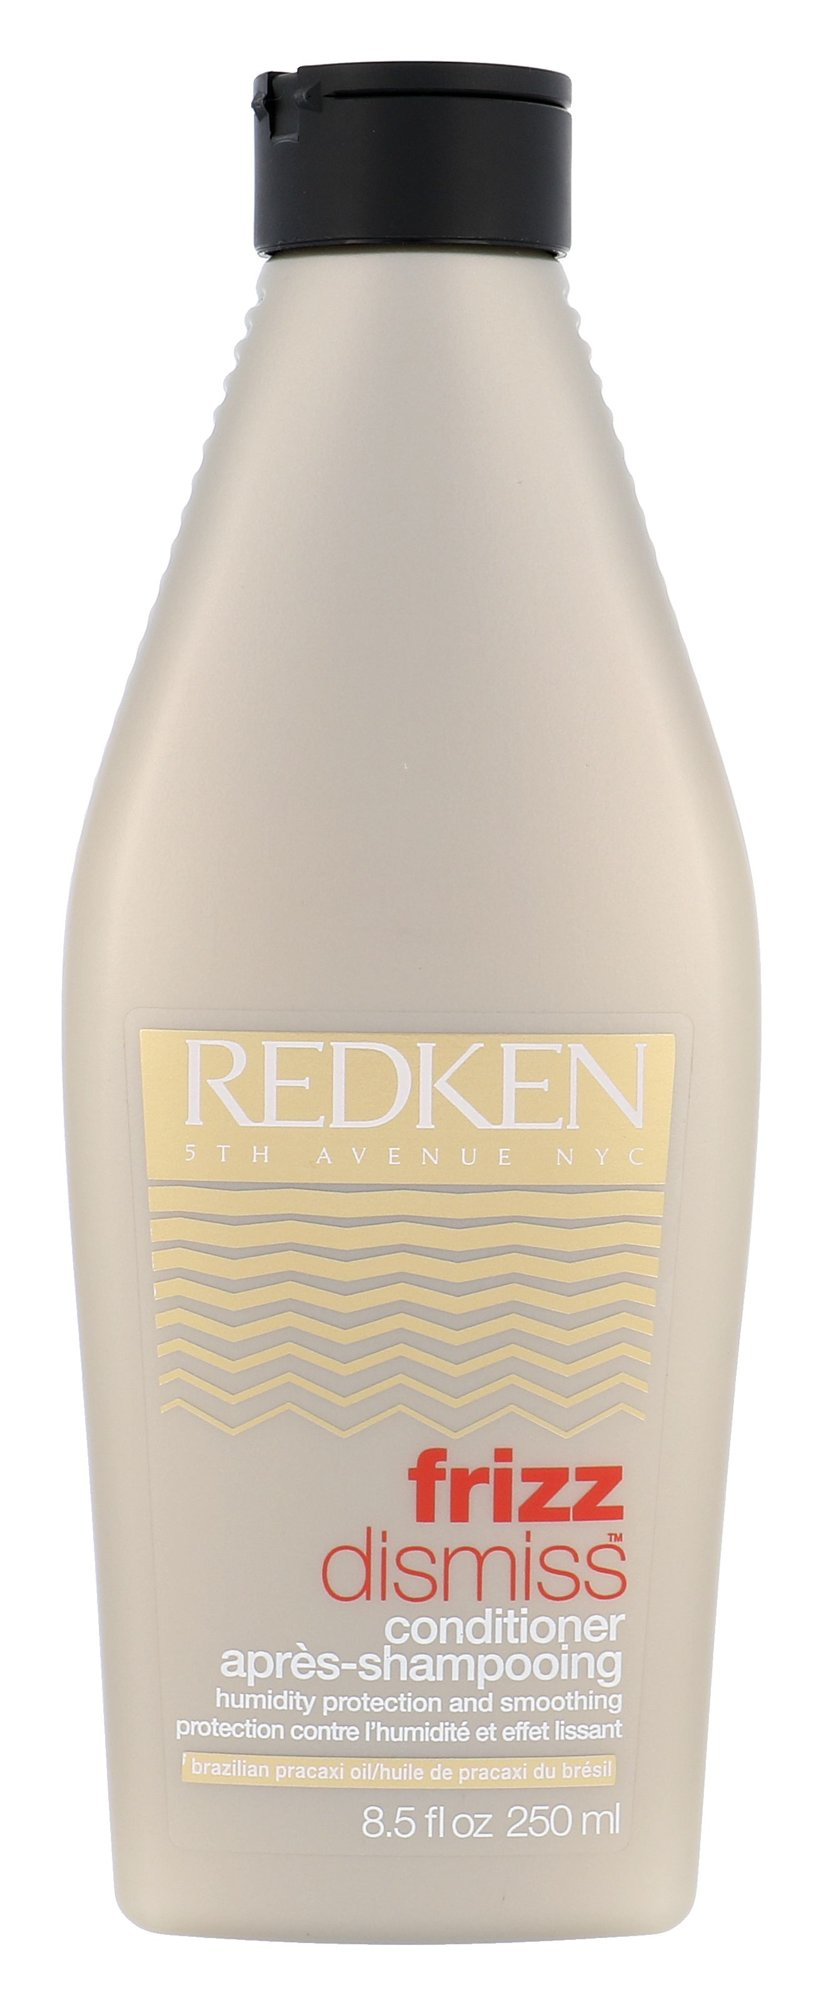 Redken Frizz Dismiss Conditioner Cosmetic 250ml